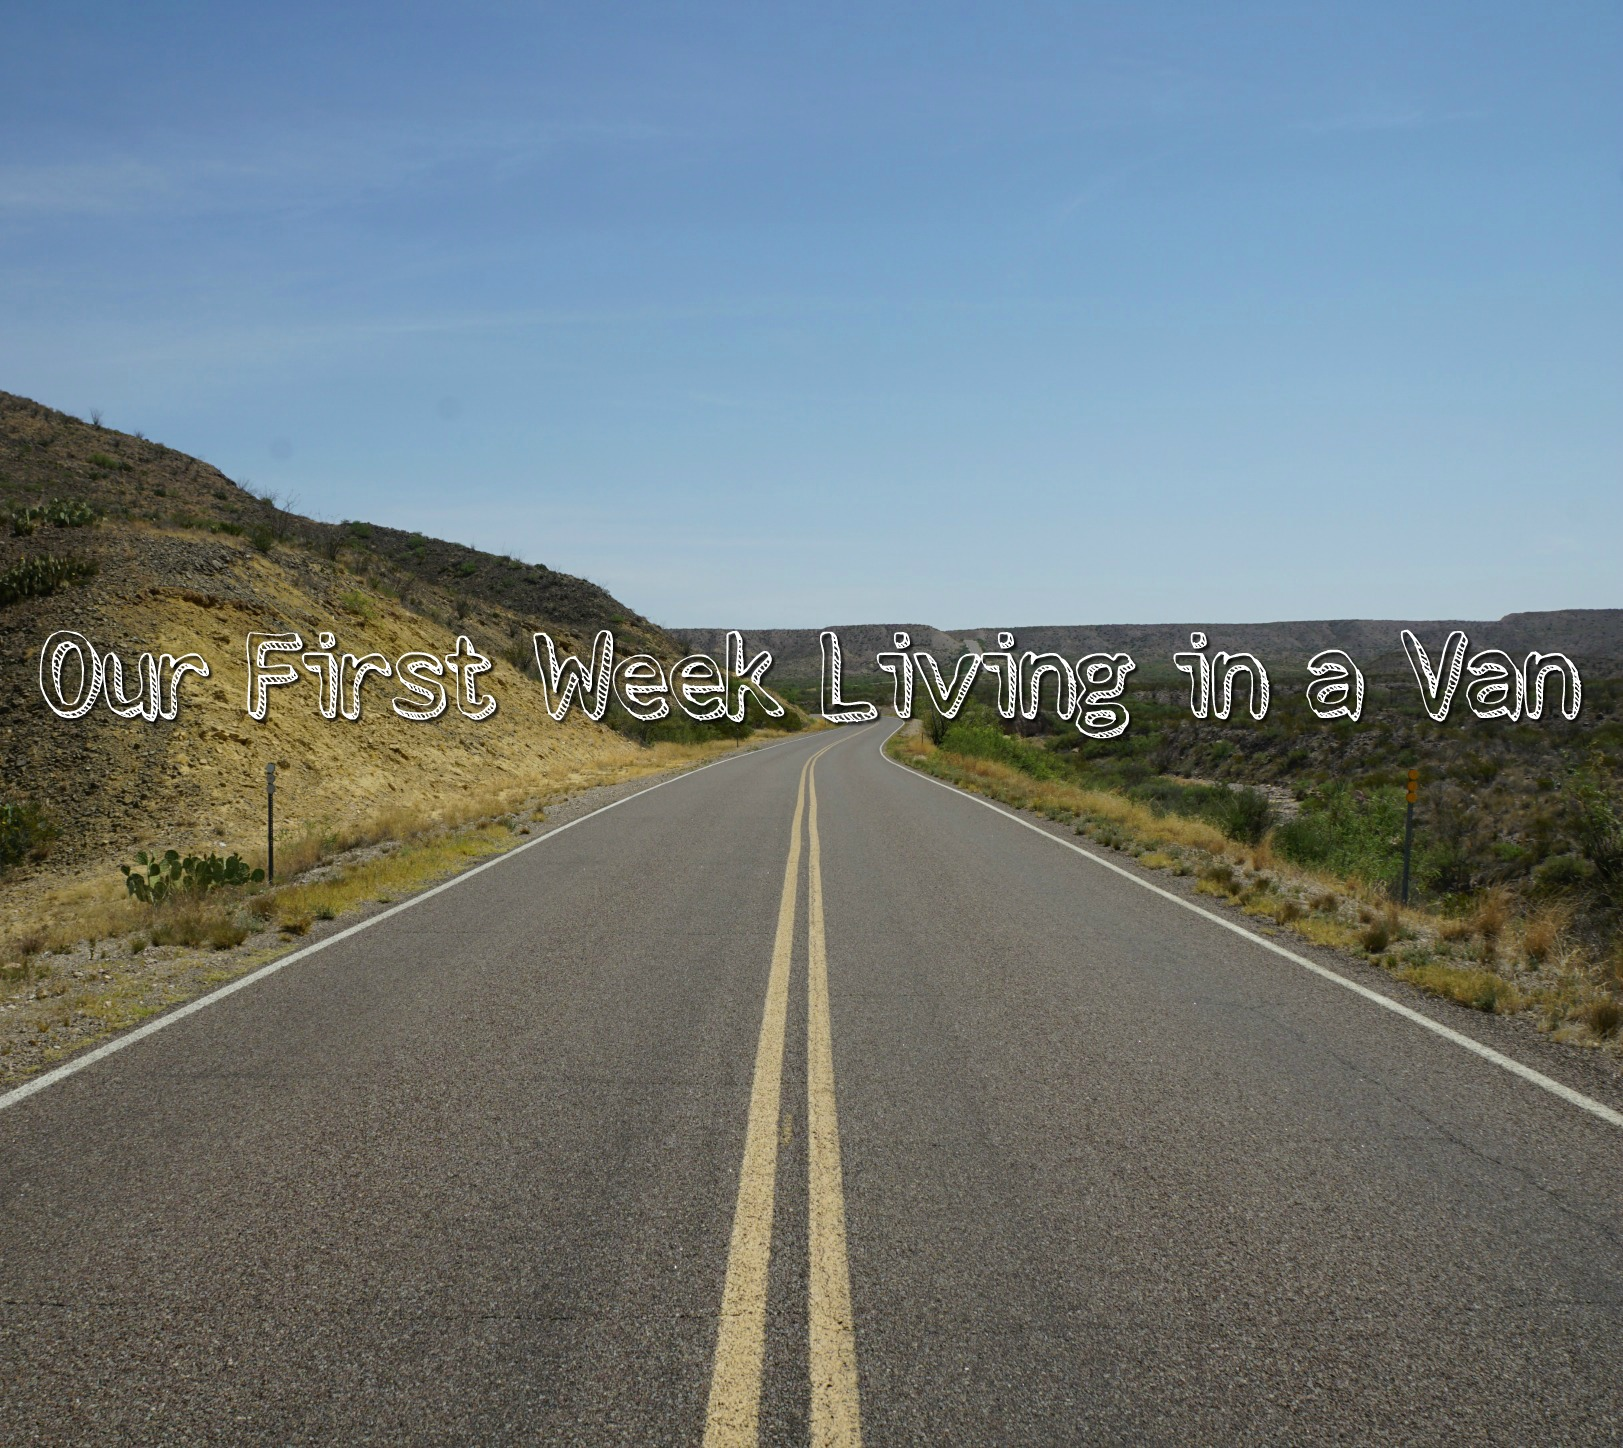 So We Live in a Van Now: Why we Decided to Live in a Vehicle & Our First Week of Van Life